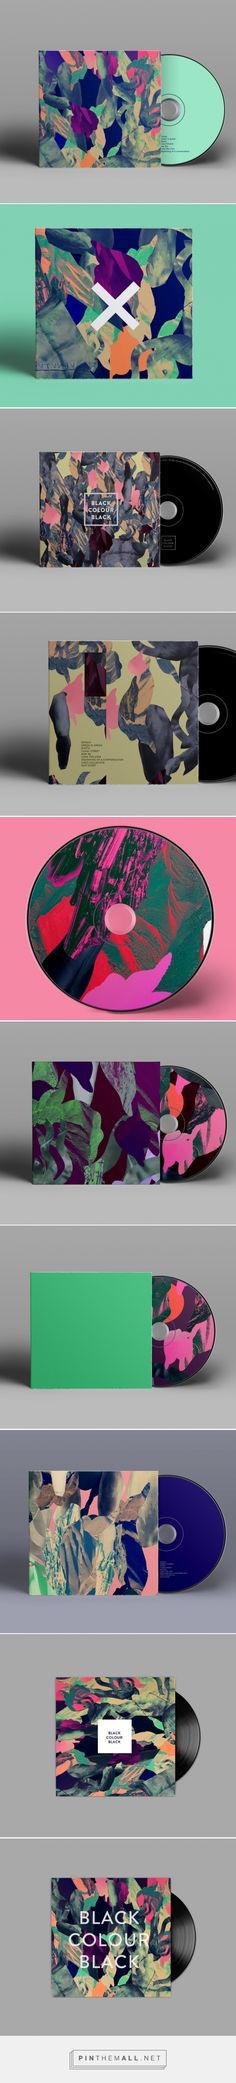 Make me some music | Colorful collages for music packaging | Designed by Anna Katrin Karlsson (Cool Art Styles)